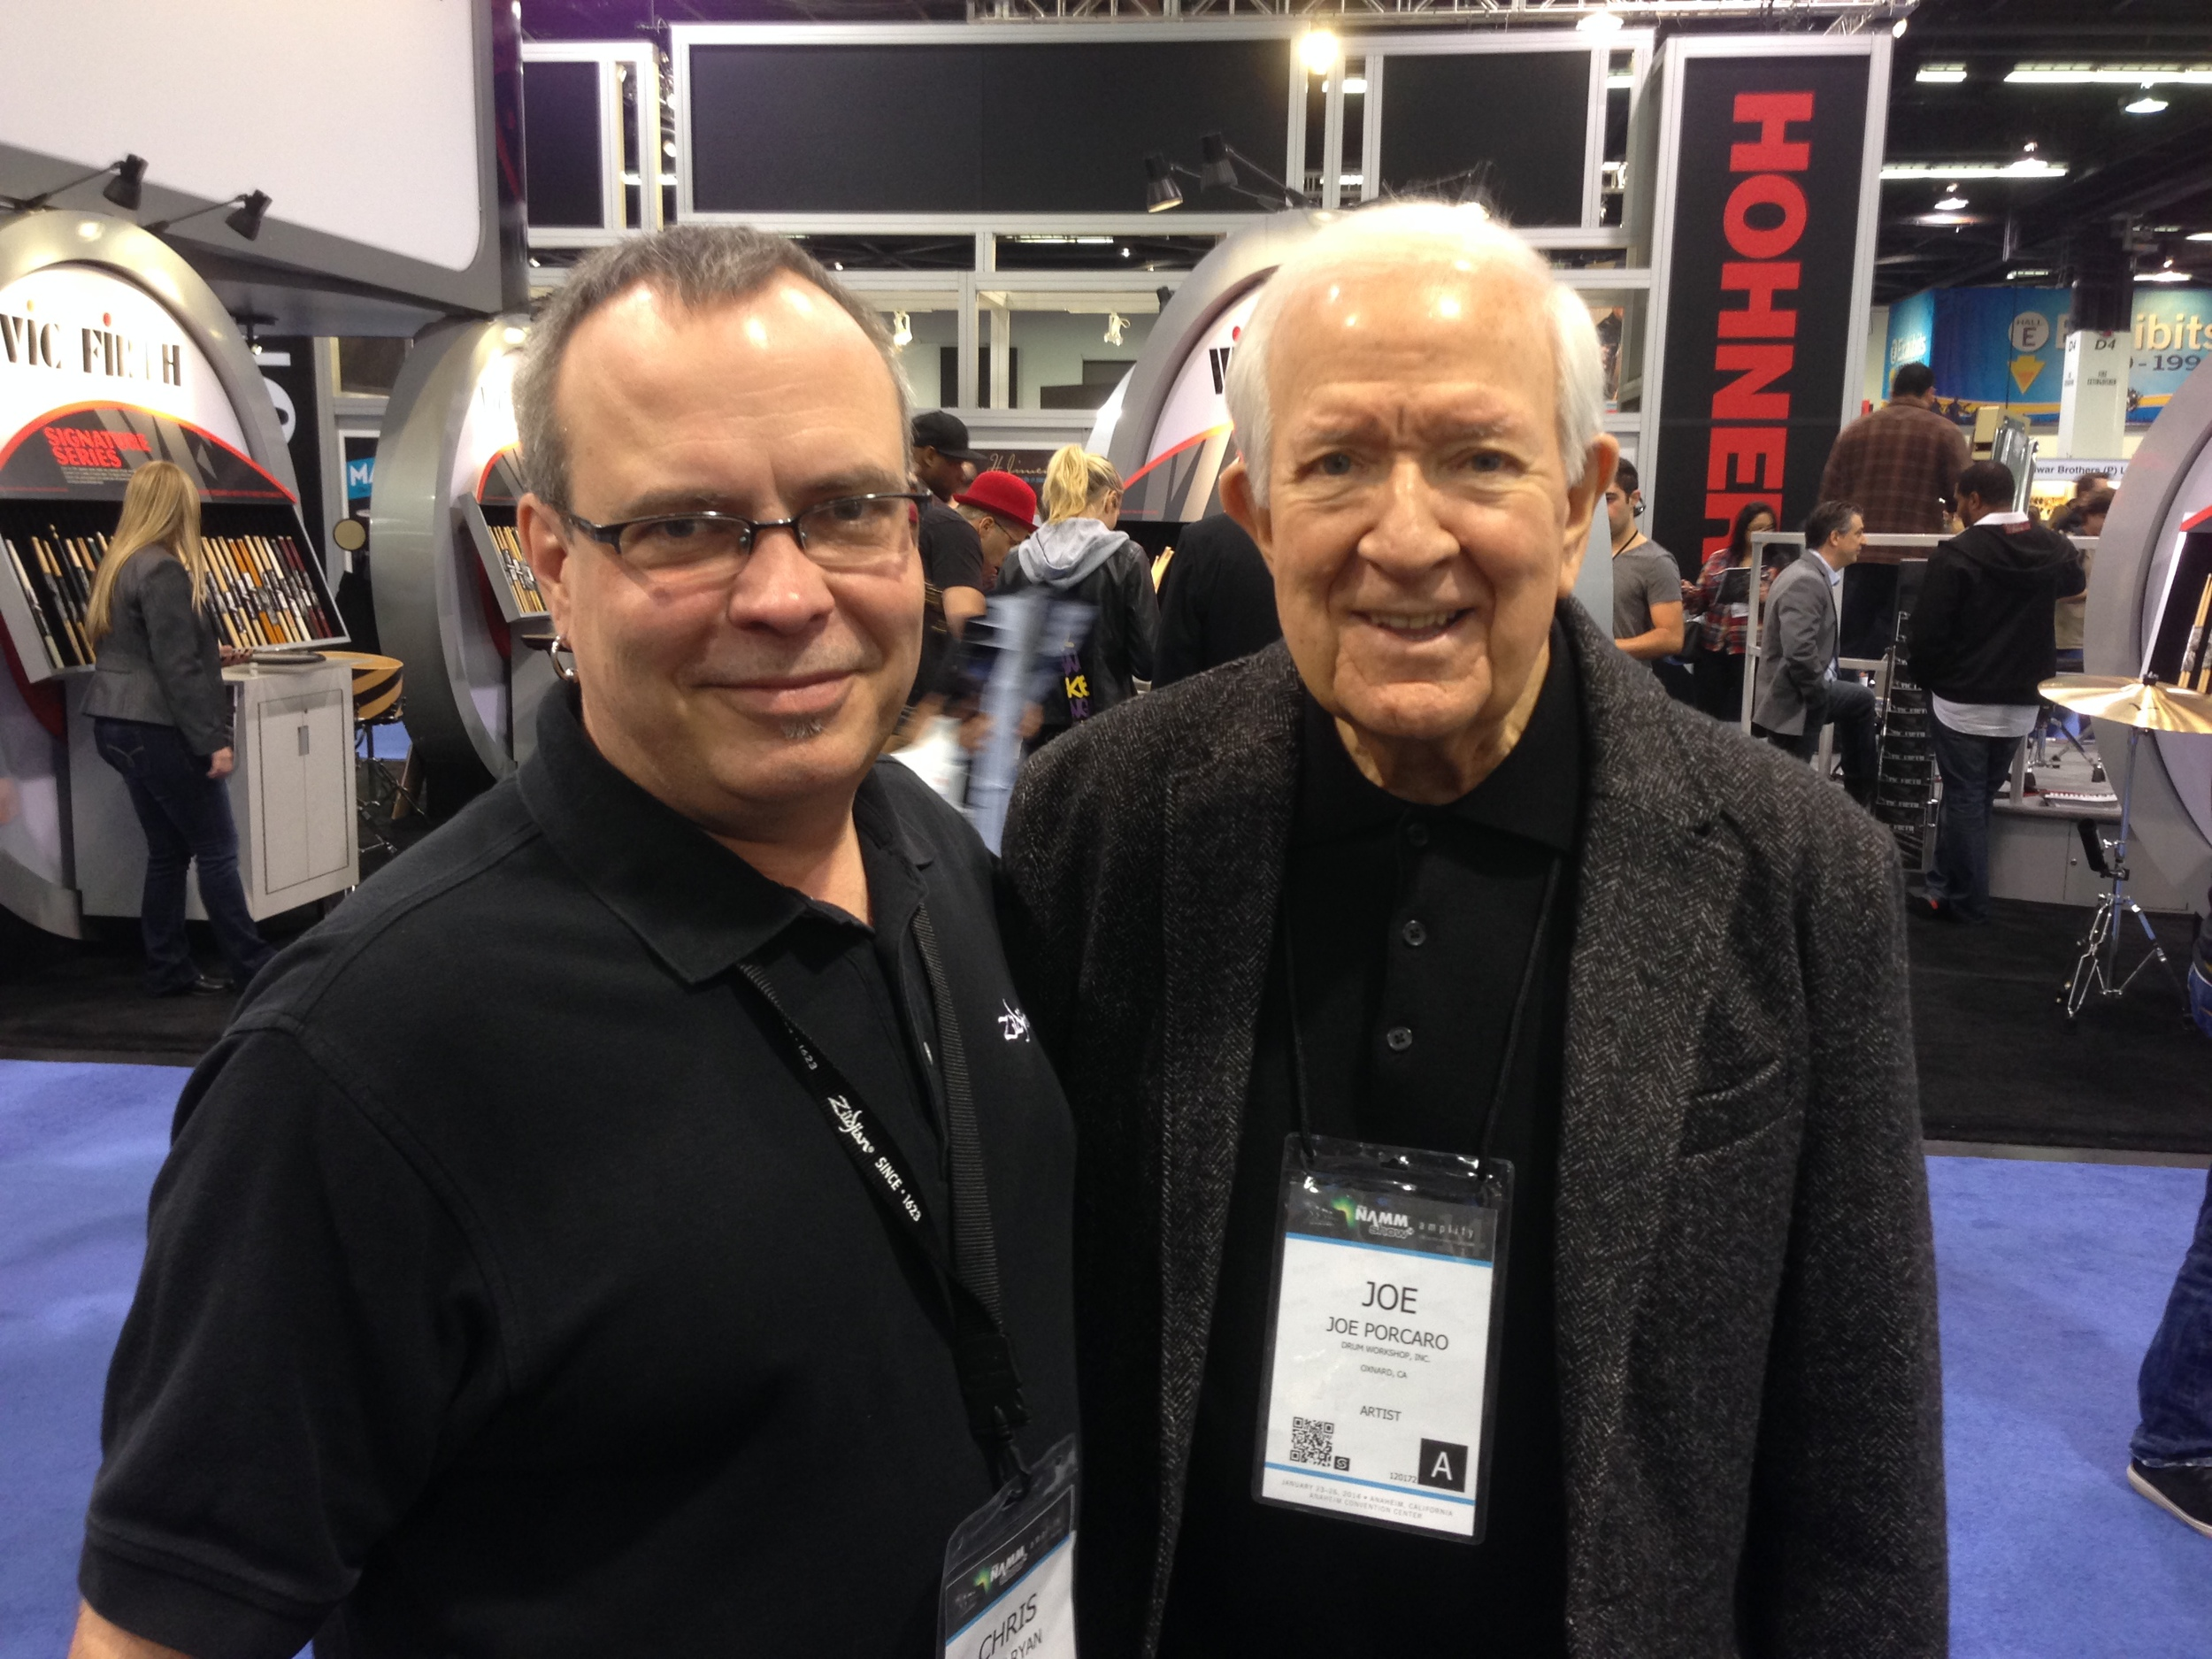 with Joe Porcaro, NAMM 2014